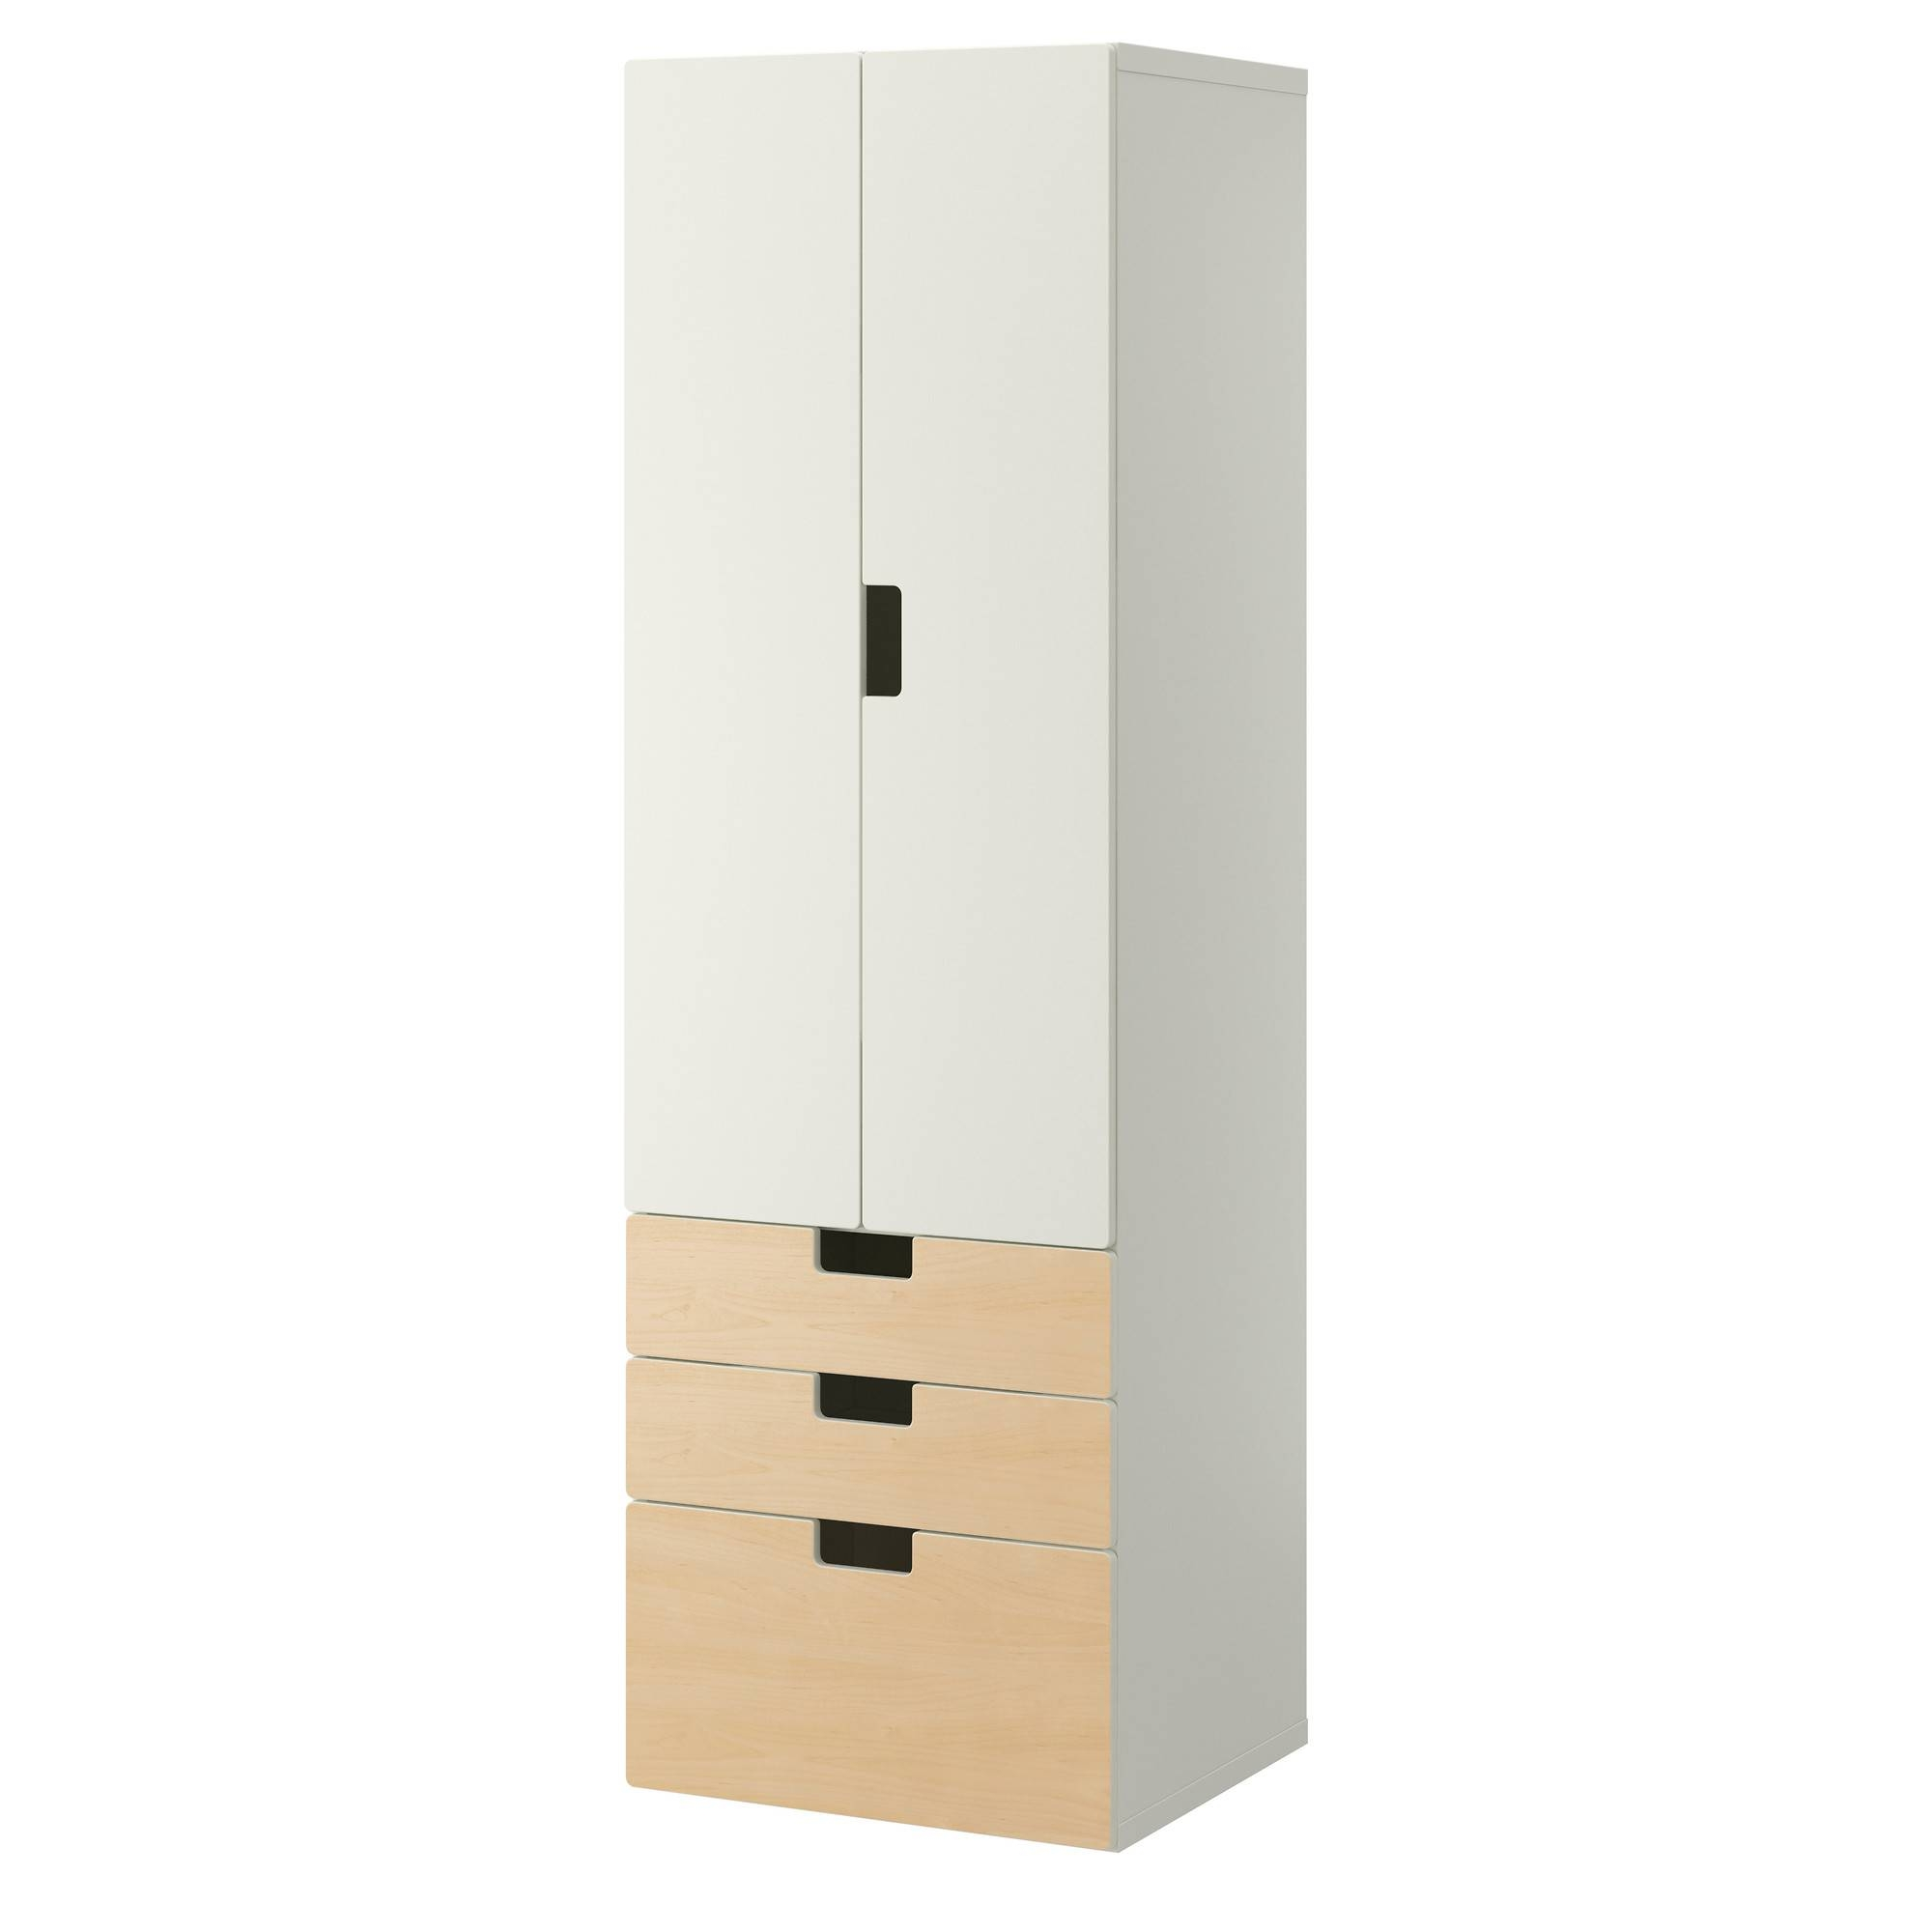 Stuva Children's Storage Units - Ikea pertaining to Wardrobes and Drawers Combo (Image 11 of 15)